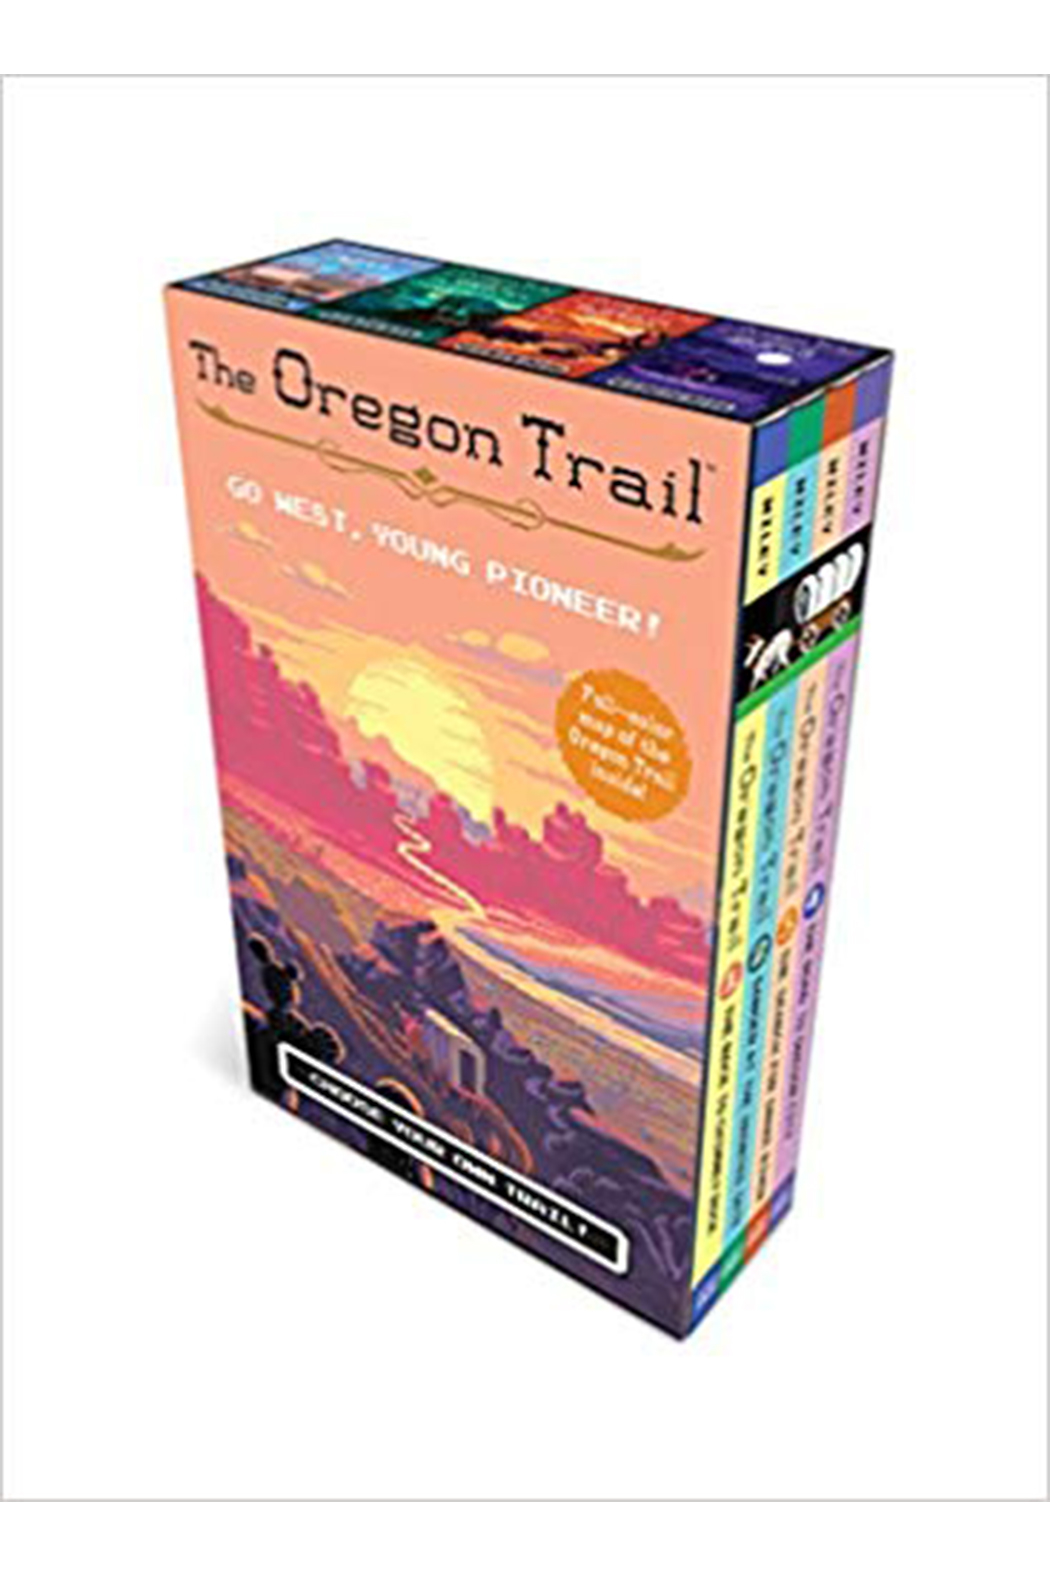 Houghton Mifflin Harcourt  The Oregon Trail: Choose Your Own Trail! Go West, Young Pioneer! Boxed Set - Main Image